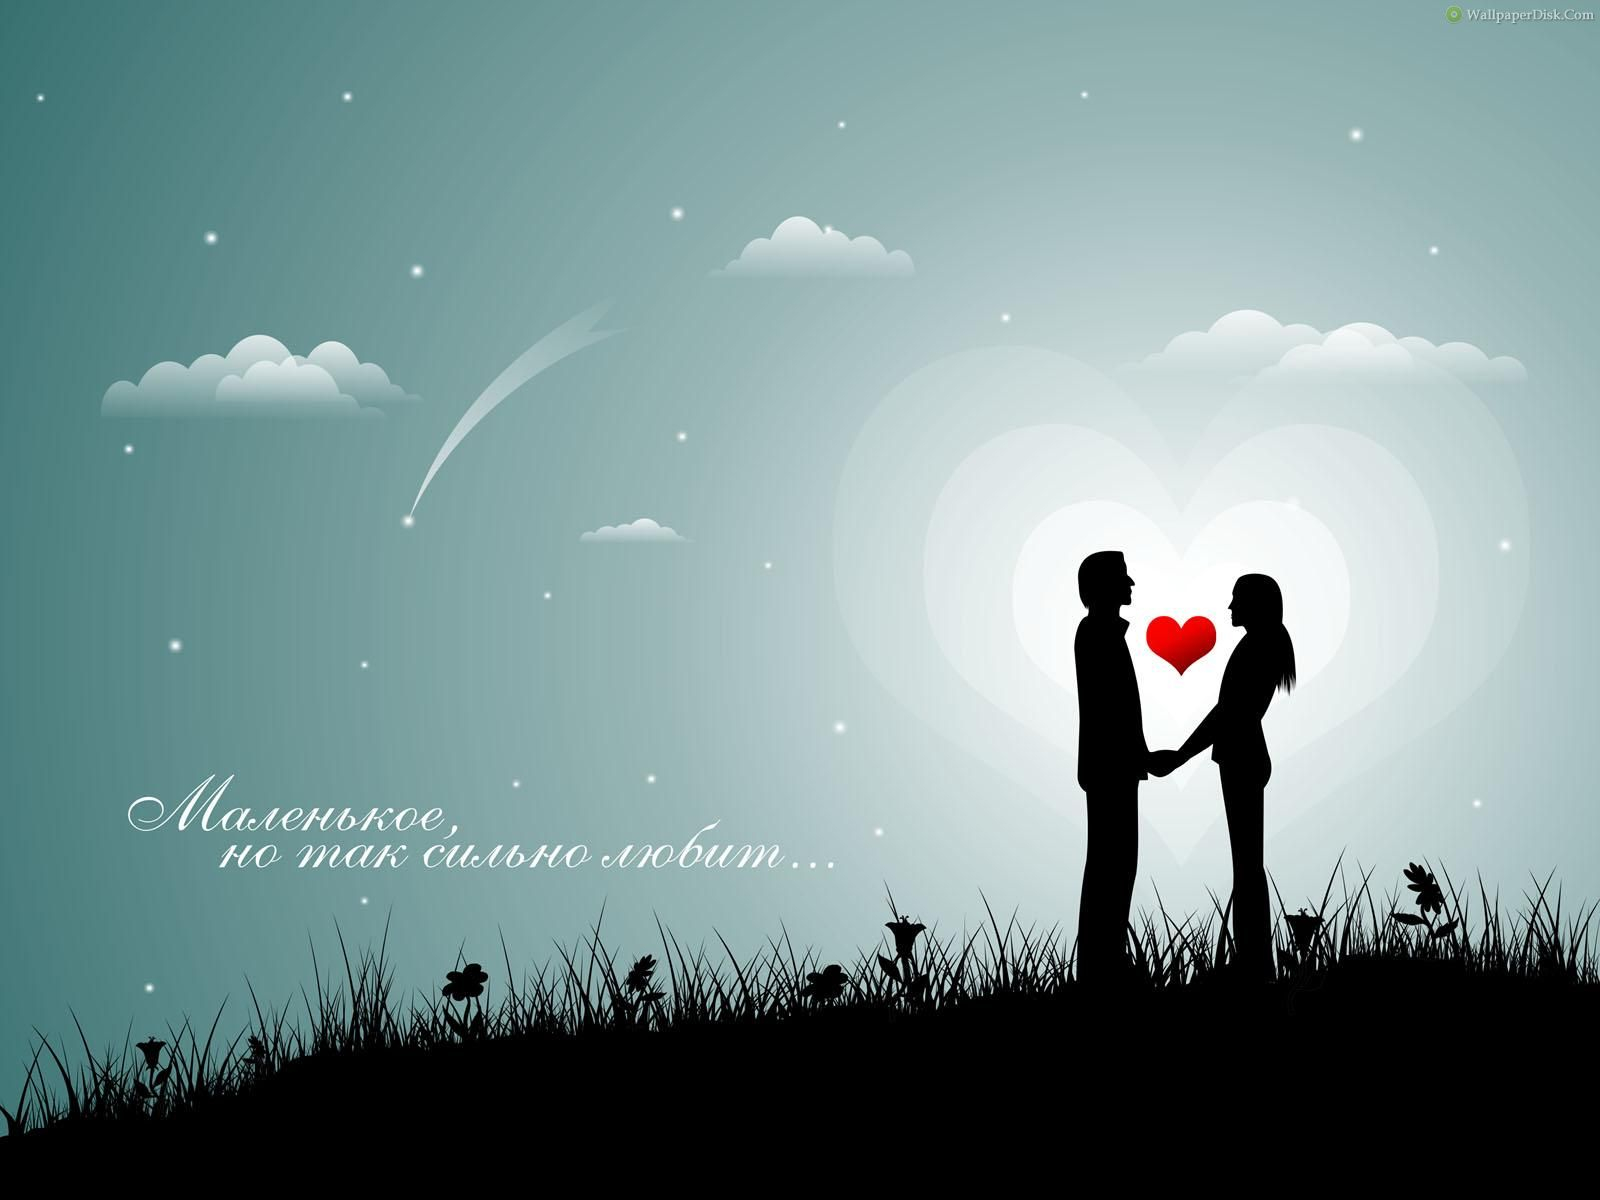 Free Download Love Couple Wallpaper 3d Hd Wallpapers Download Hd Wallpapers 1600x1200 For Your Desktop Mobile Tablet Explore 76 Love Couples Wallpapers Cute Couple Wallpaper Romantic Couple Wallpapers Sweet Couple Wallpaper